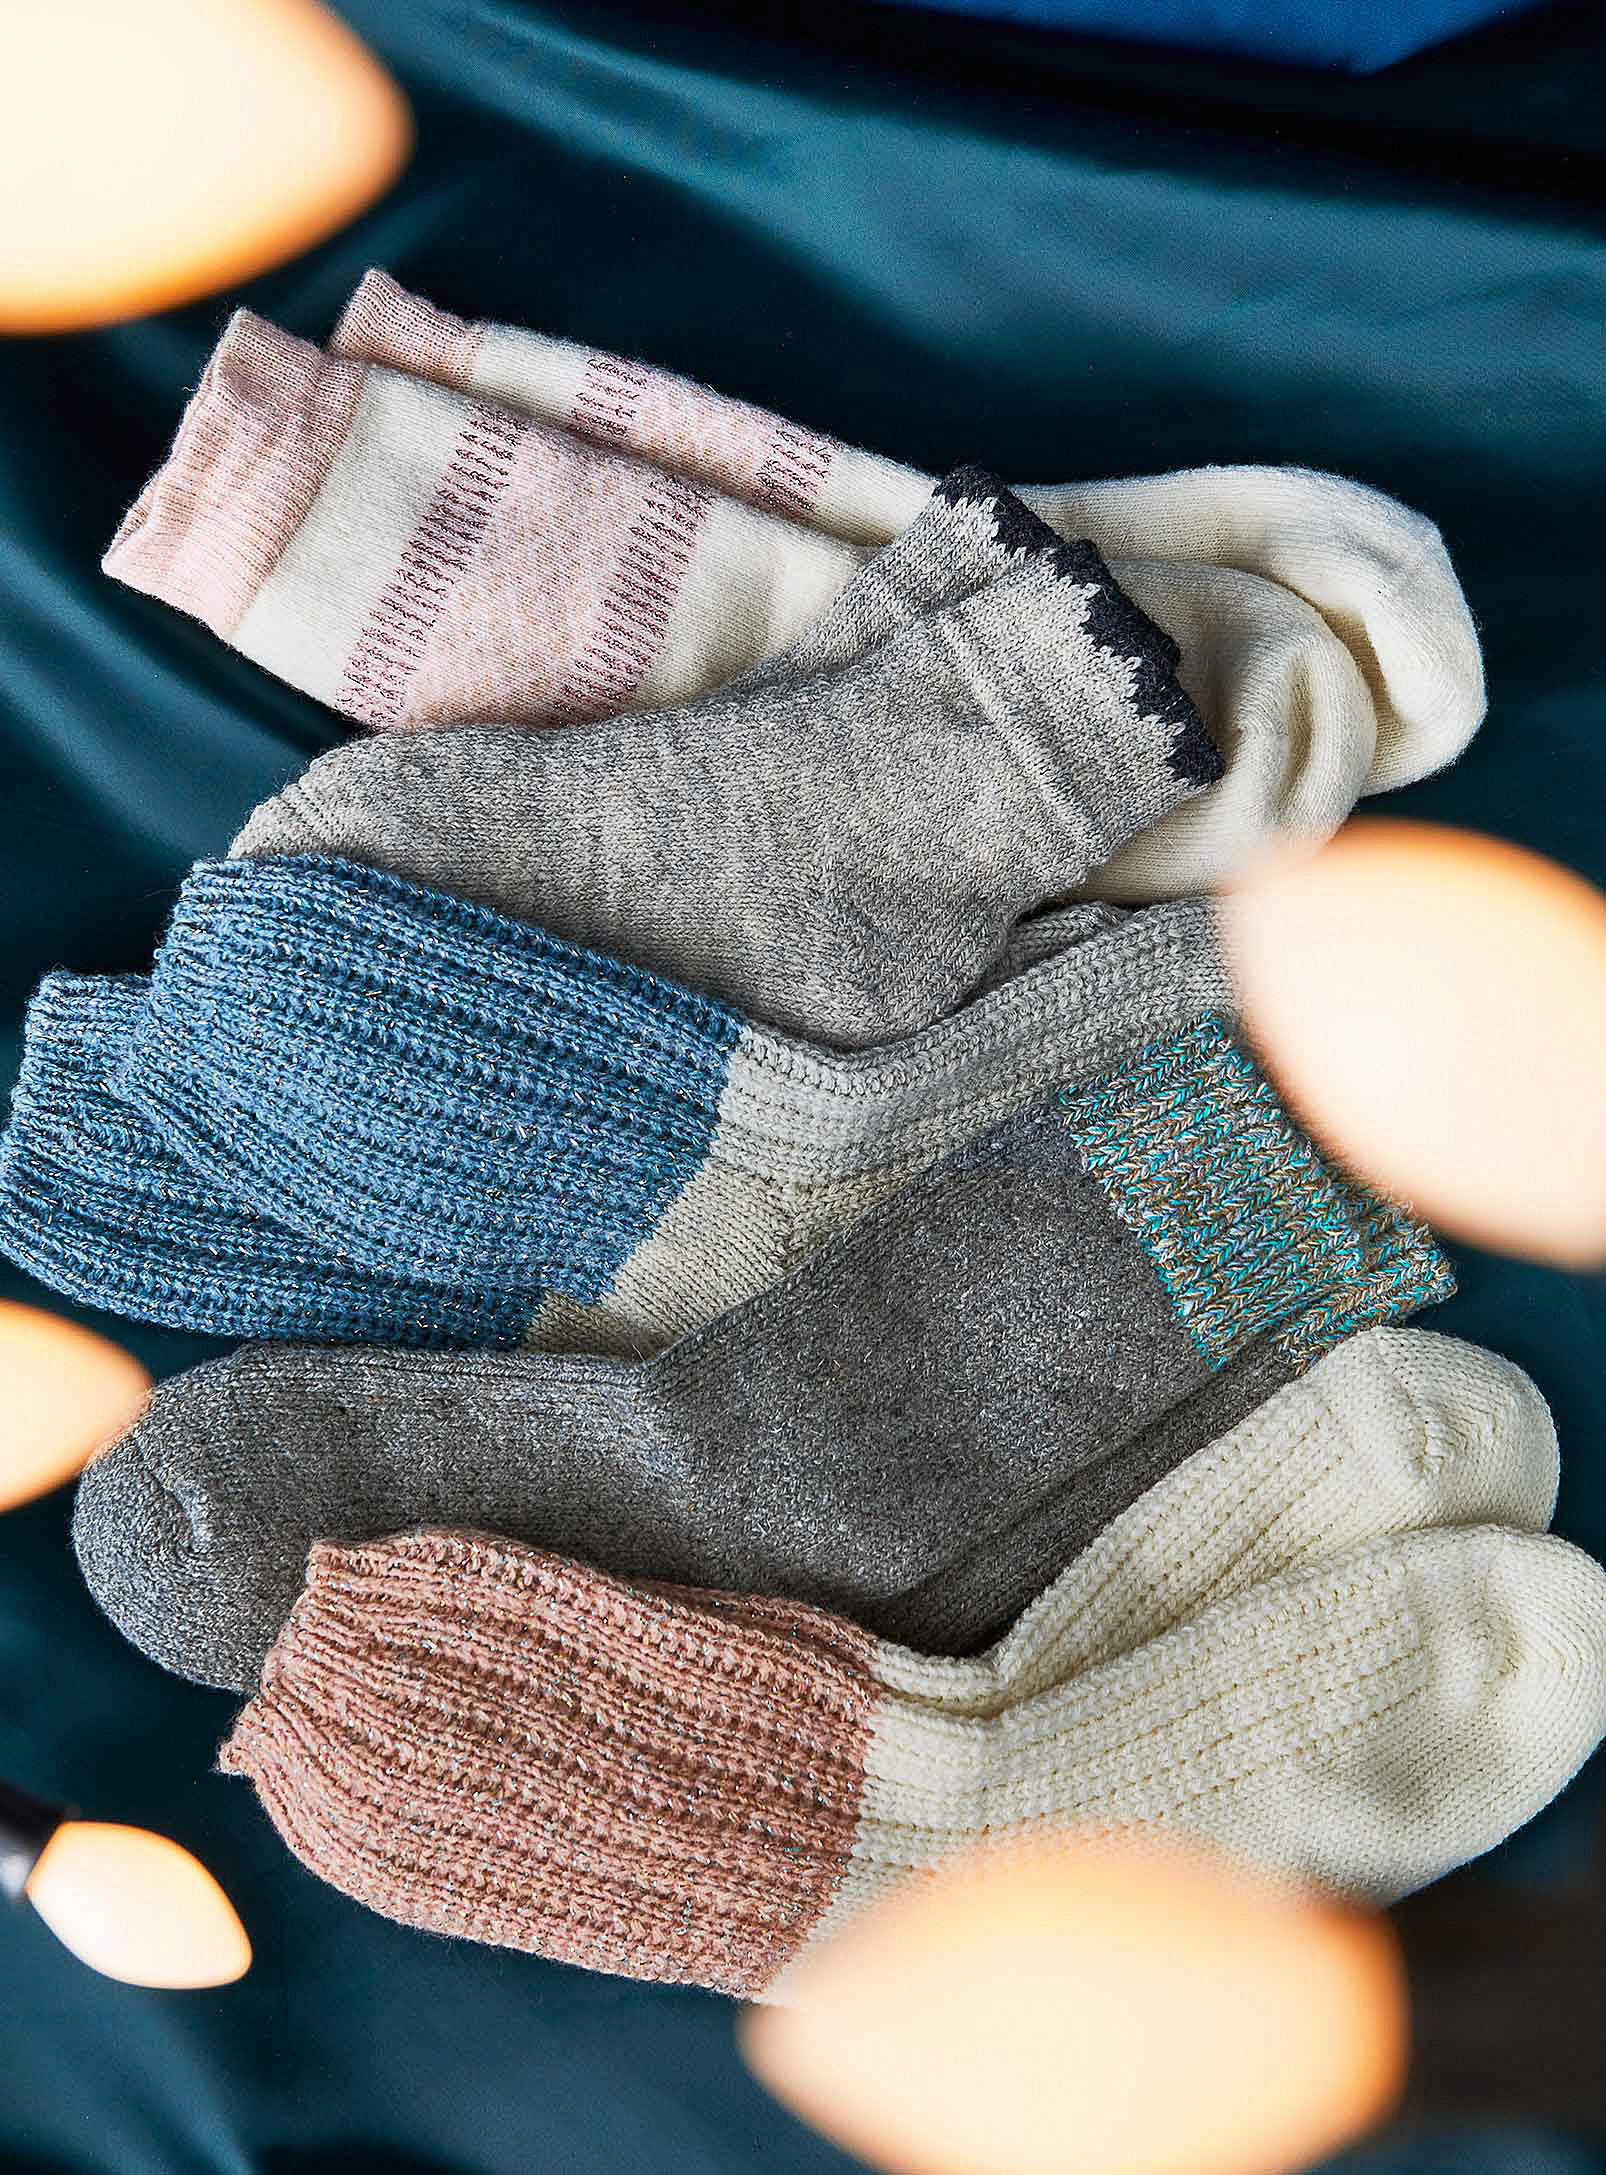 Five pairs of knit socks in a pile